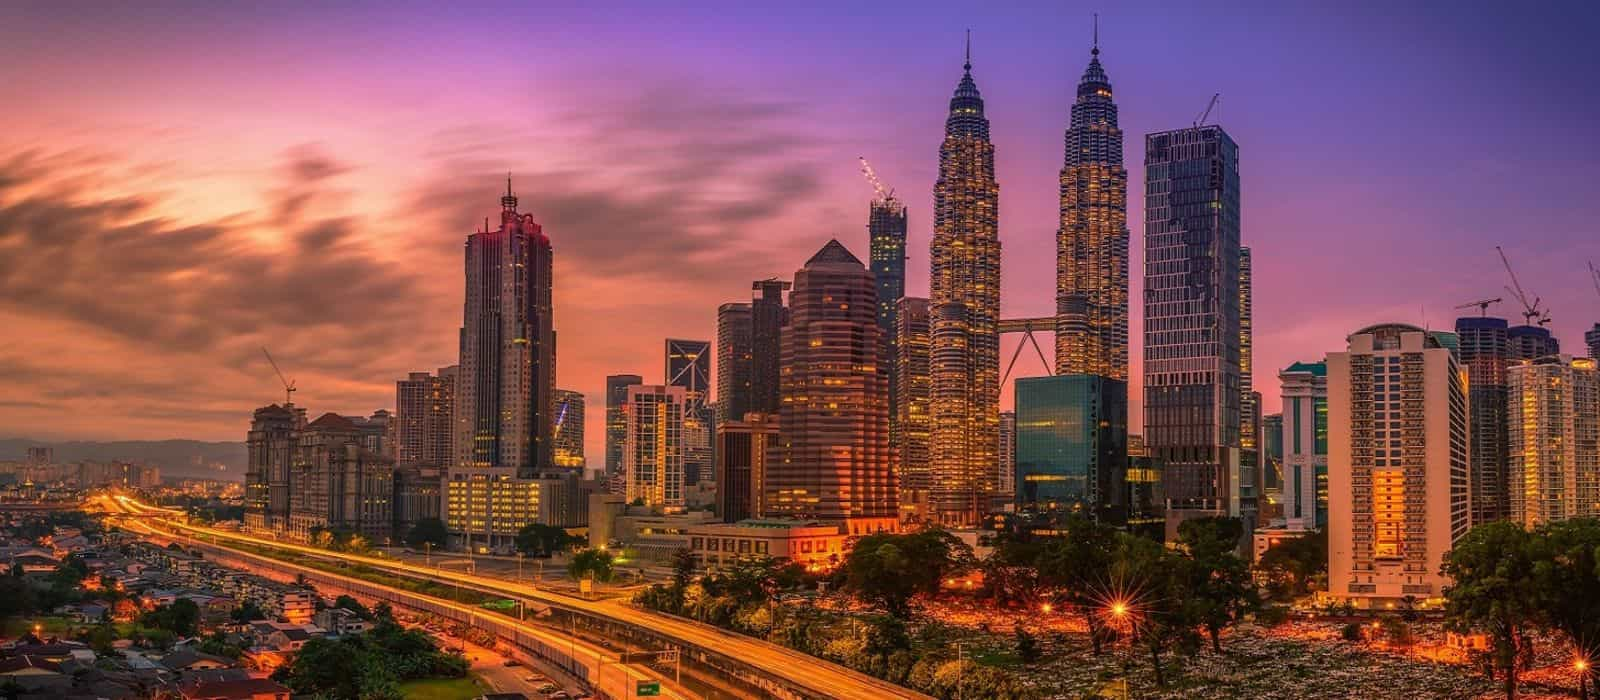 60+ Malaysia Local Business Listings Sites List 2019 - List Your